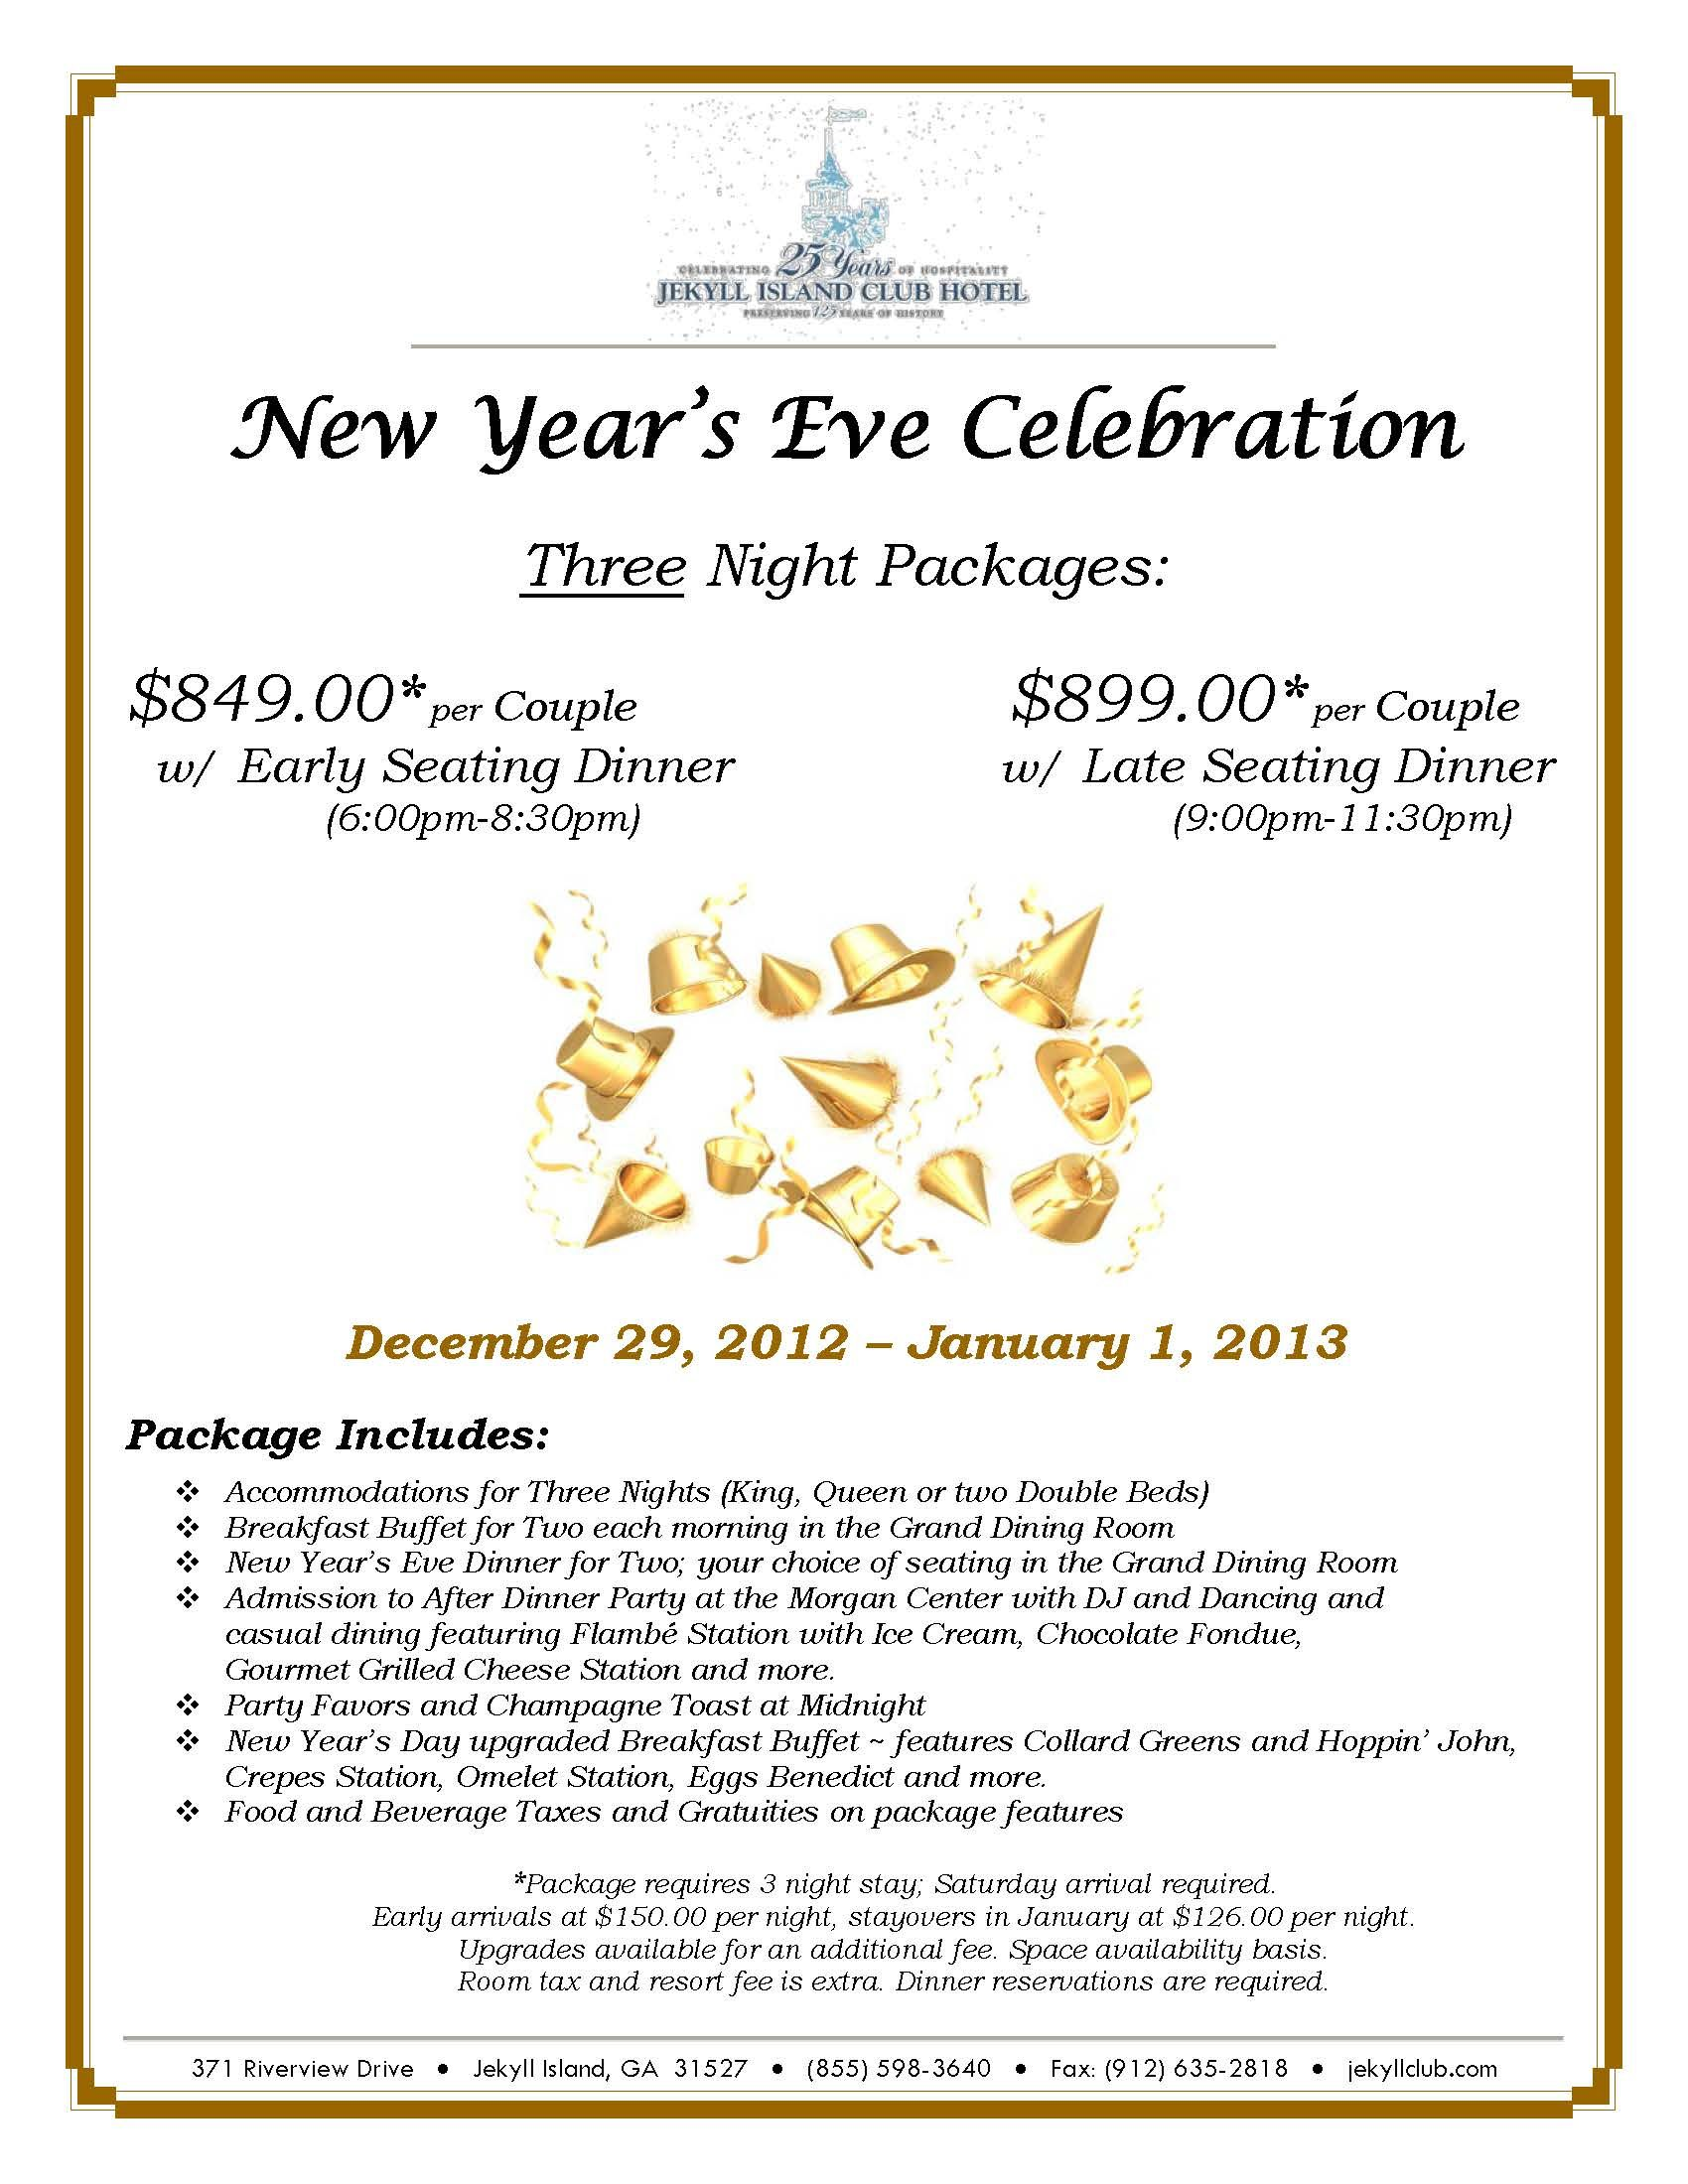 New Years Eve Hotel Vacation Packages New Years Getaway